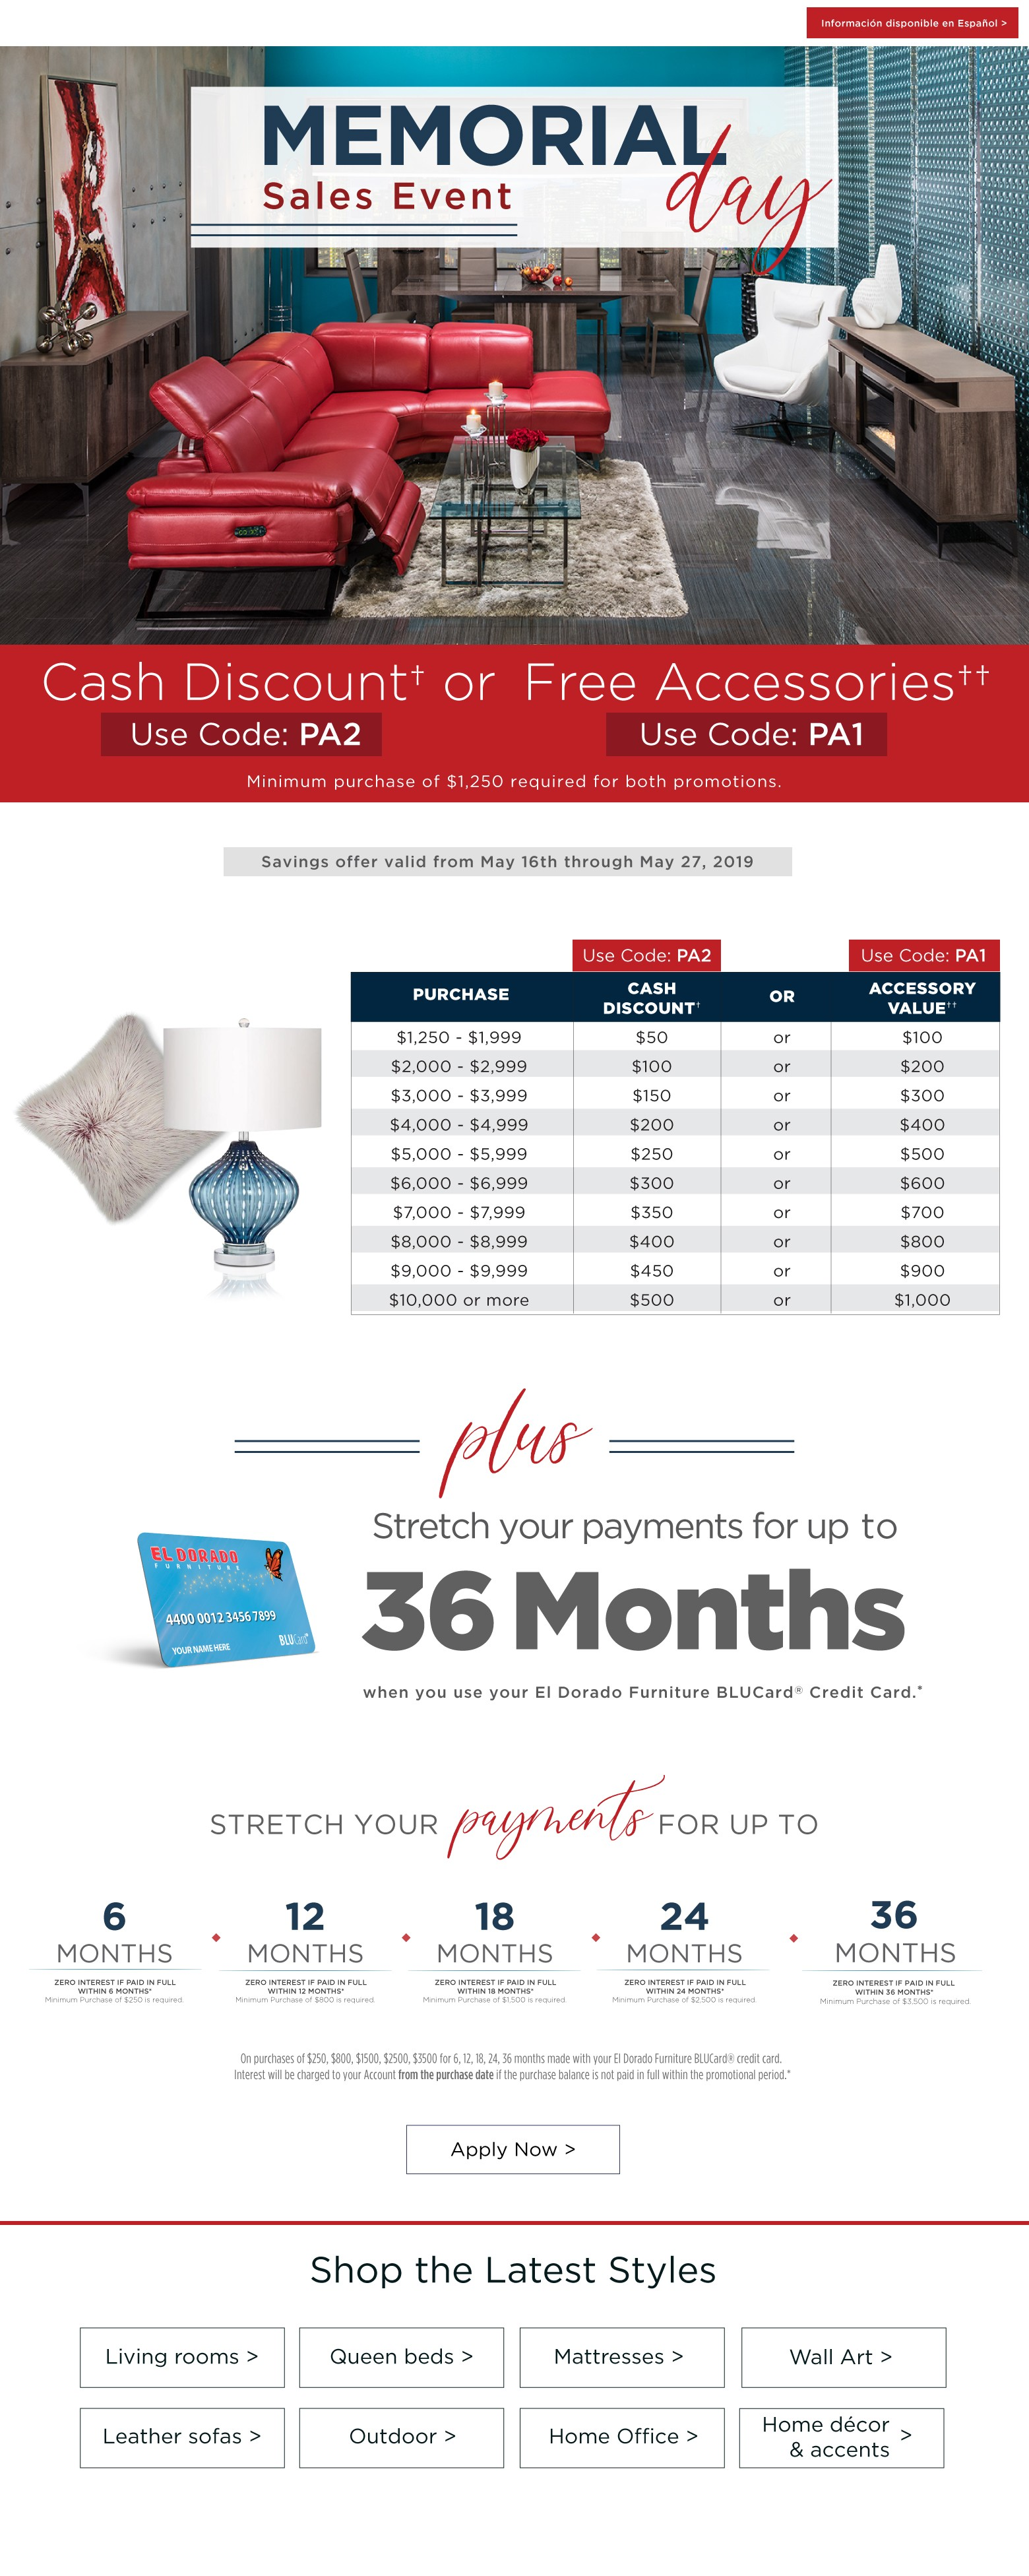 informacion disponible disponible en espanol memorial day sales event. Cash discount or free accessories minimum purchase of $1250 requires for both promotions plus stretch your payments for up to 36 months when you use your el dorado furniture blucard credit card apply now savings offer valid fromk may 17th through may 27, 2019 puechase cash discount or accessory value $1250-$1999 $50 or $100 $2000-$2999 $100 or $200 $3000 - $3999 $150 or $300 $4,000 - $4999 $200 or $400 $5000 - $5999 $250 or $500 $6000 - $6999 $300 or $600 $7000 - $7,999 $350 or $700 $8000 – 8,999 $400 or $900 $10000 or more $500 or $1000. Stretch your payments for up to 6 months zero interest if paid in full within 6 months minimum purchase of $250 is required 12 months zero interest if paid in full within 12 months minimum zero interest if paid in full within 12 months minimum purchase of $800 is required 18 months zero interest if paid in full within 18 months minimum purchase of $1500 is required 24 months zero interest if paid in full within 24 months zero interest if paid in full within 24 months minimum purchase of $2500 is required 36 months zero interest if paid in full within 36 months minimum purchase of $3500 is required on purchases of $250, $800, $1500, $2500, $3500 for 6, 12, 18, 24, 36 months made with your el dorado furniture blucard credit card interest will be charged to your account from the purchase date if the purchase balance is not paid in full within the promotional period. Informacion disponible en espanol. Shop the latest styles. Living rooms queen beds mattresses wall art leather sofas outdoor home office home décor and accents